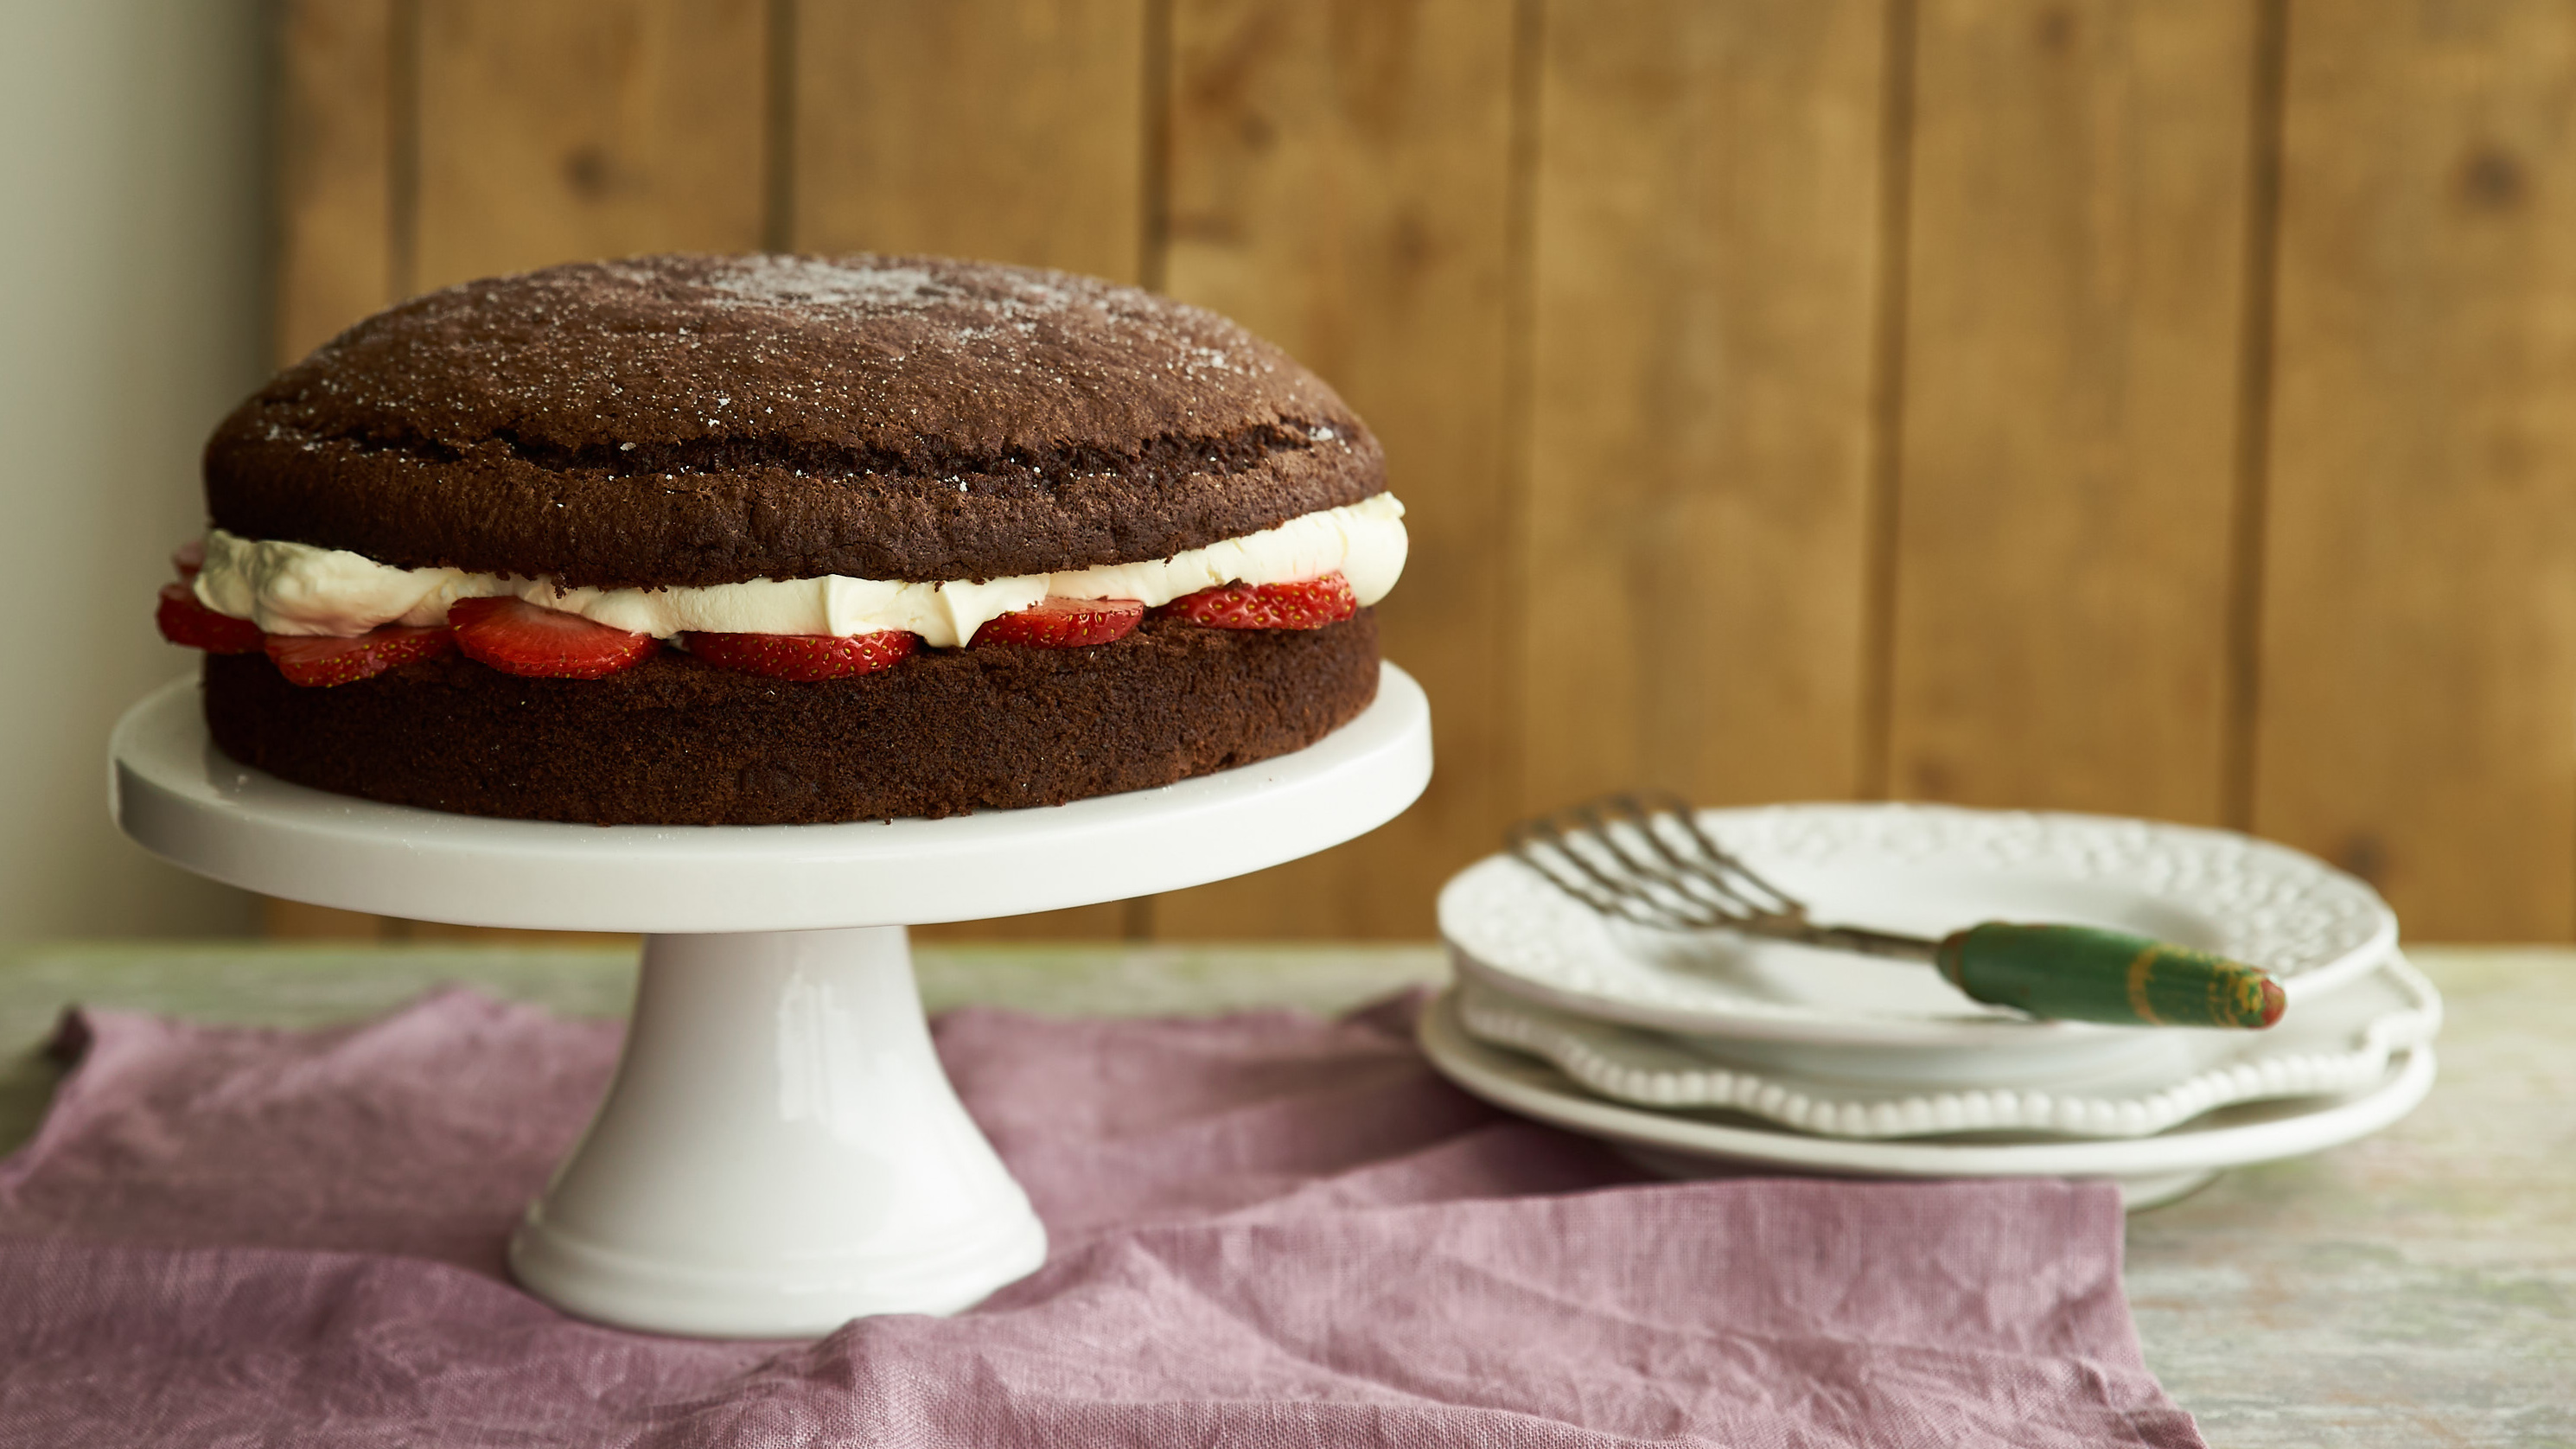 Egg free sponge cake recipe bbc food forumfinder Images